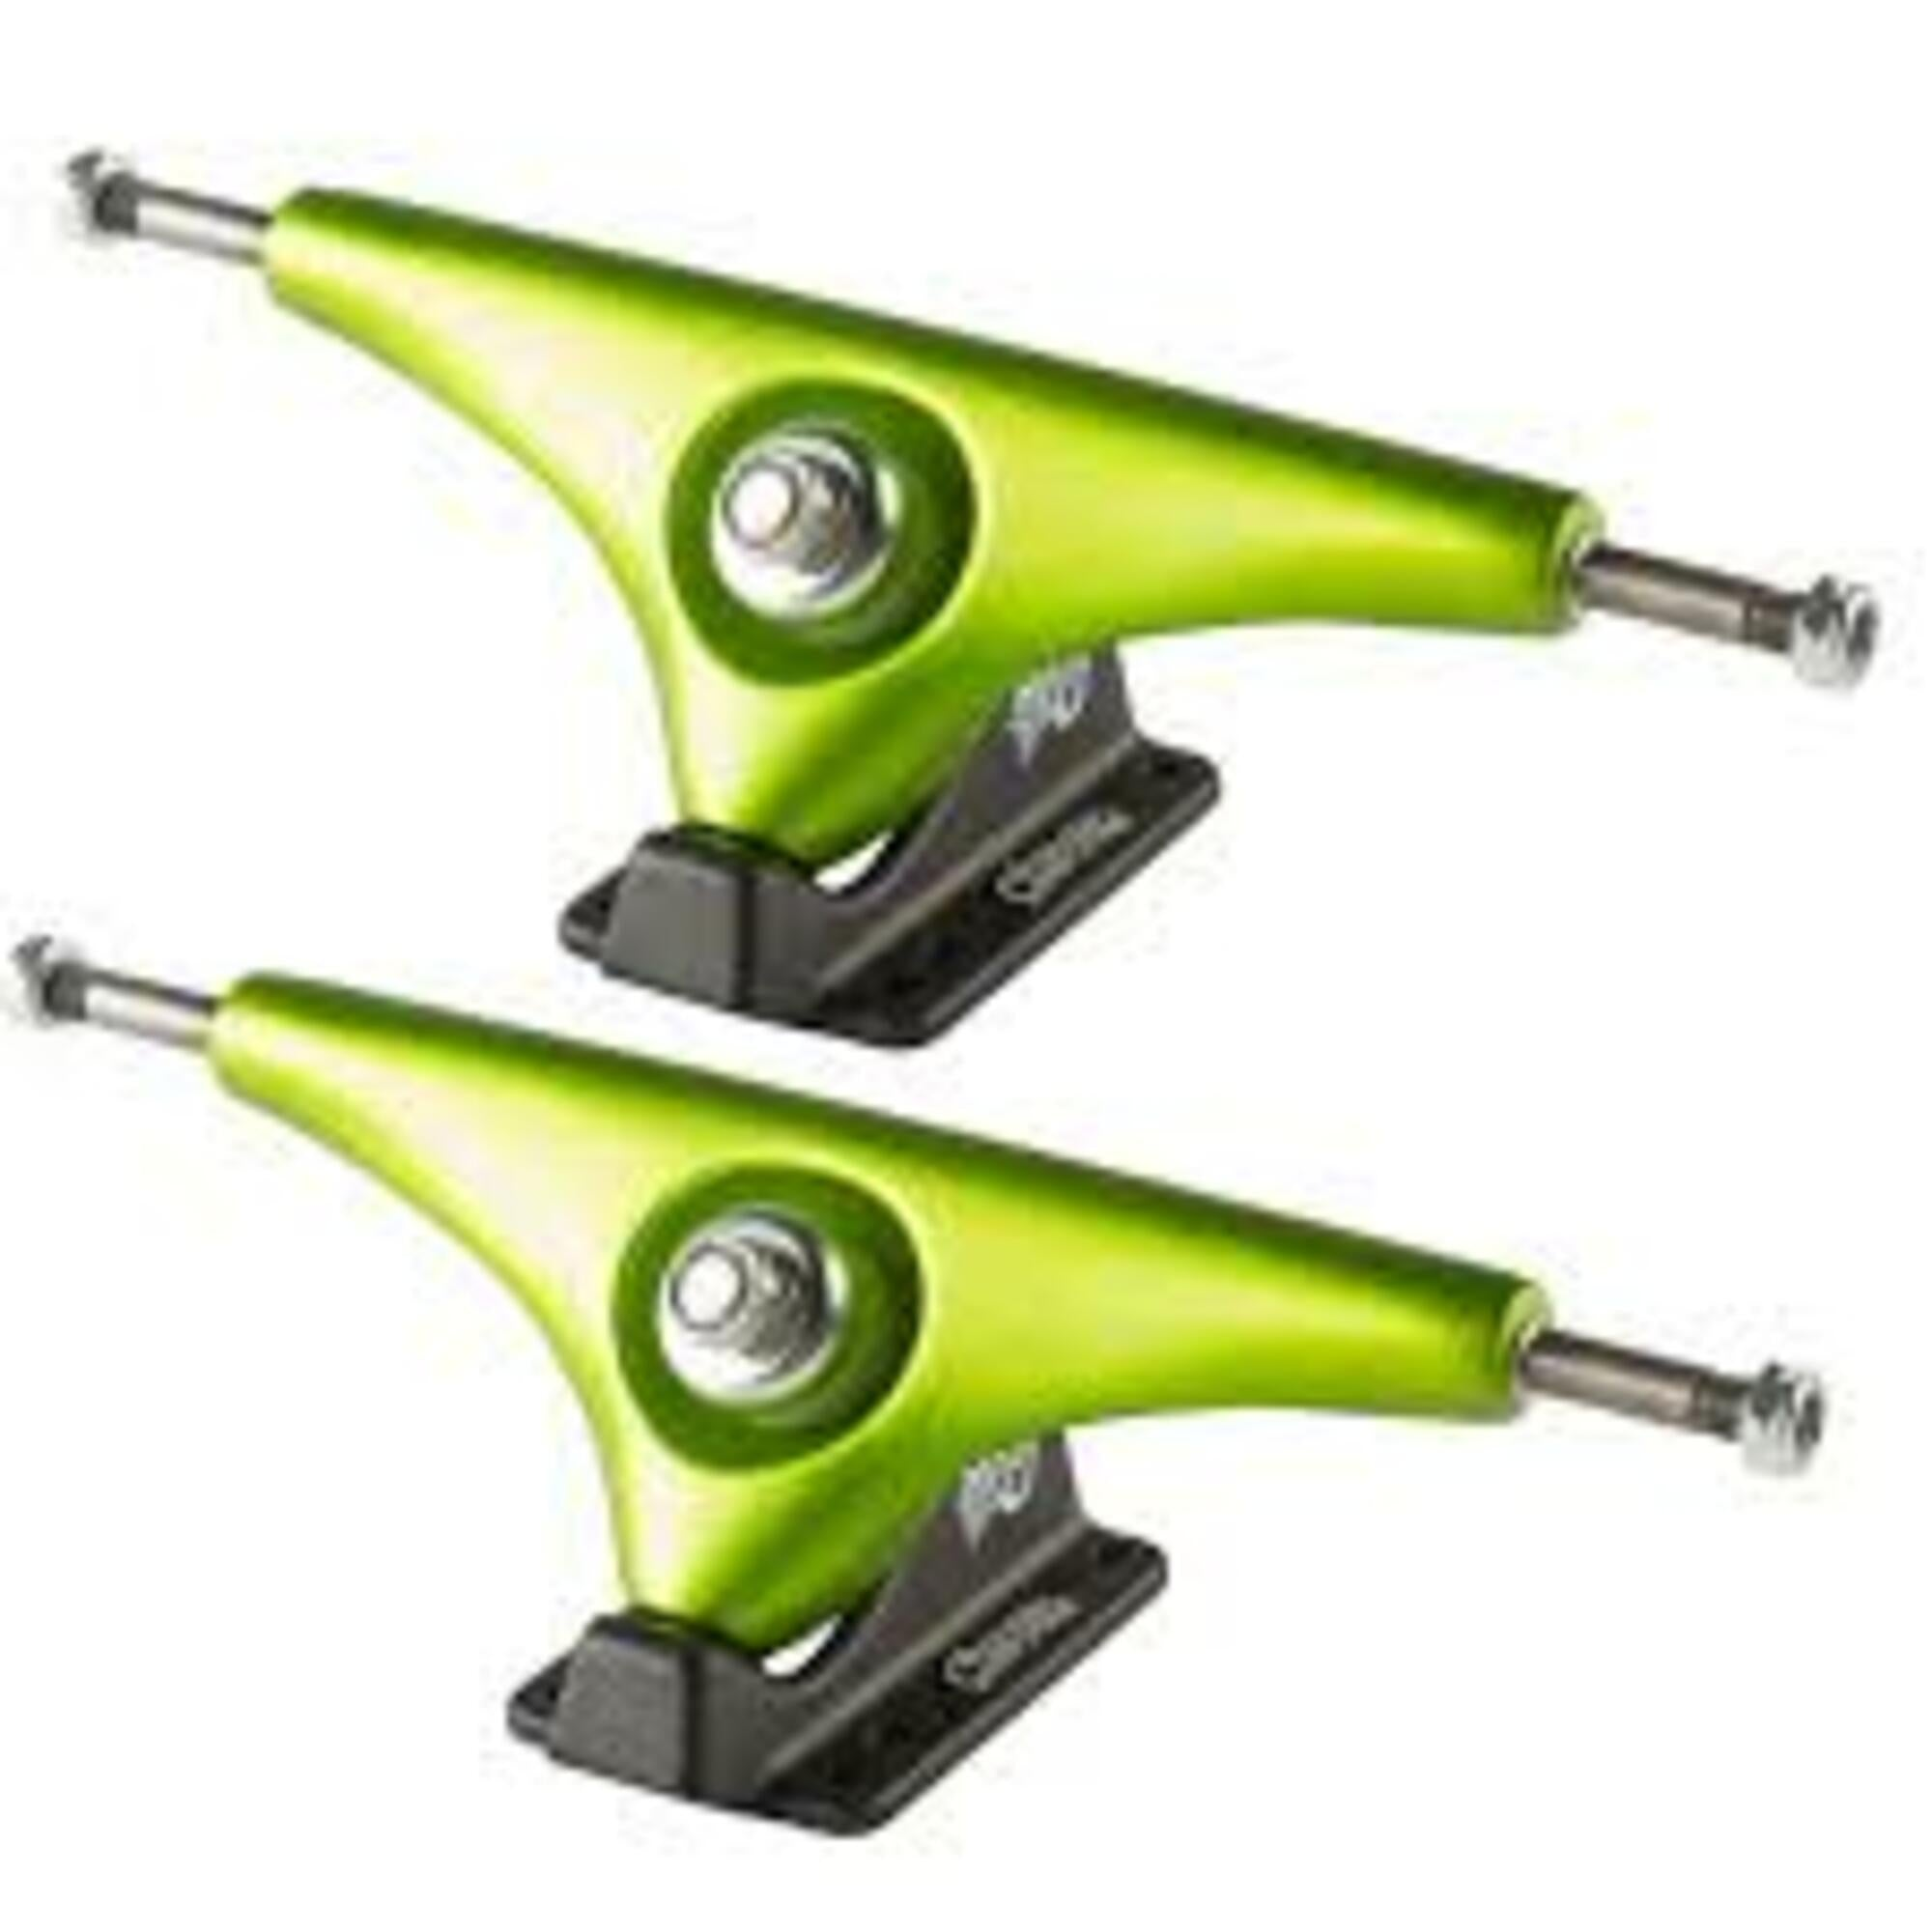 Gullwing Charger 9.0 Truck - Lime/Black 50 Degrees